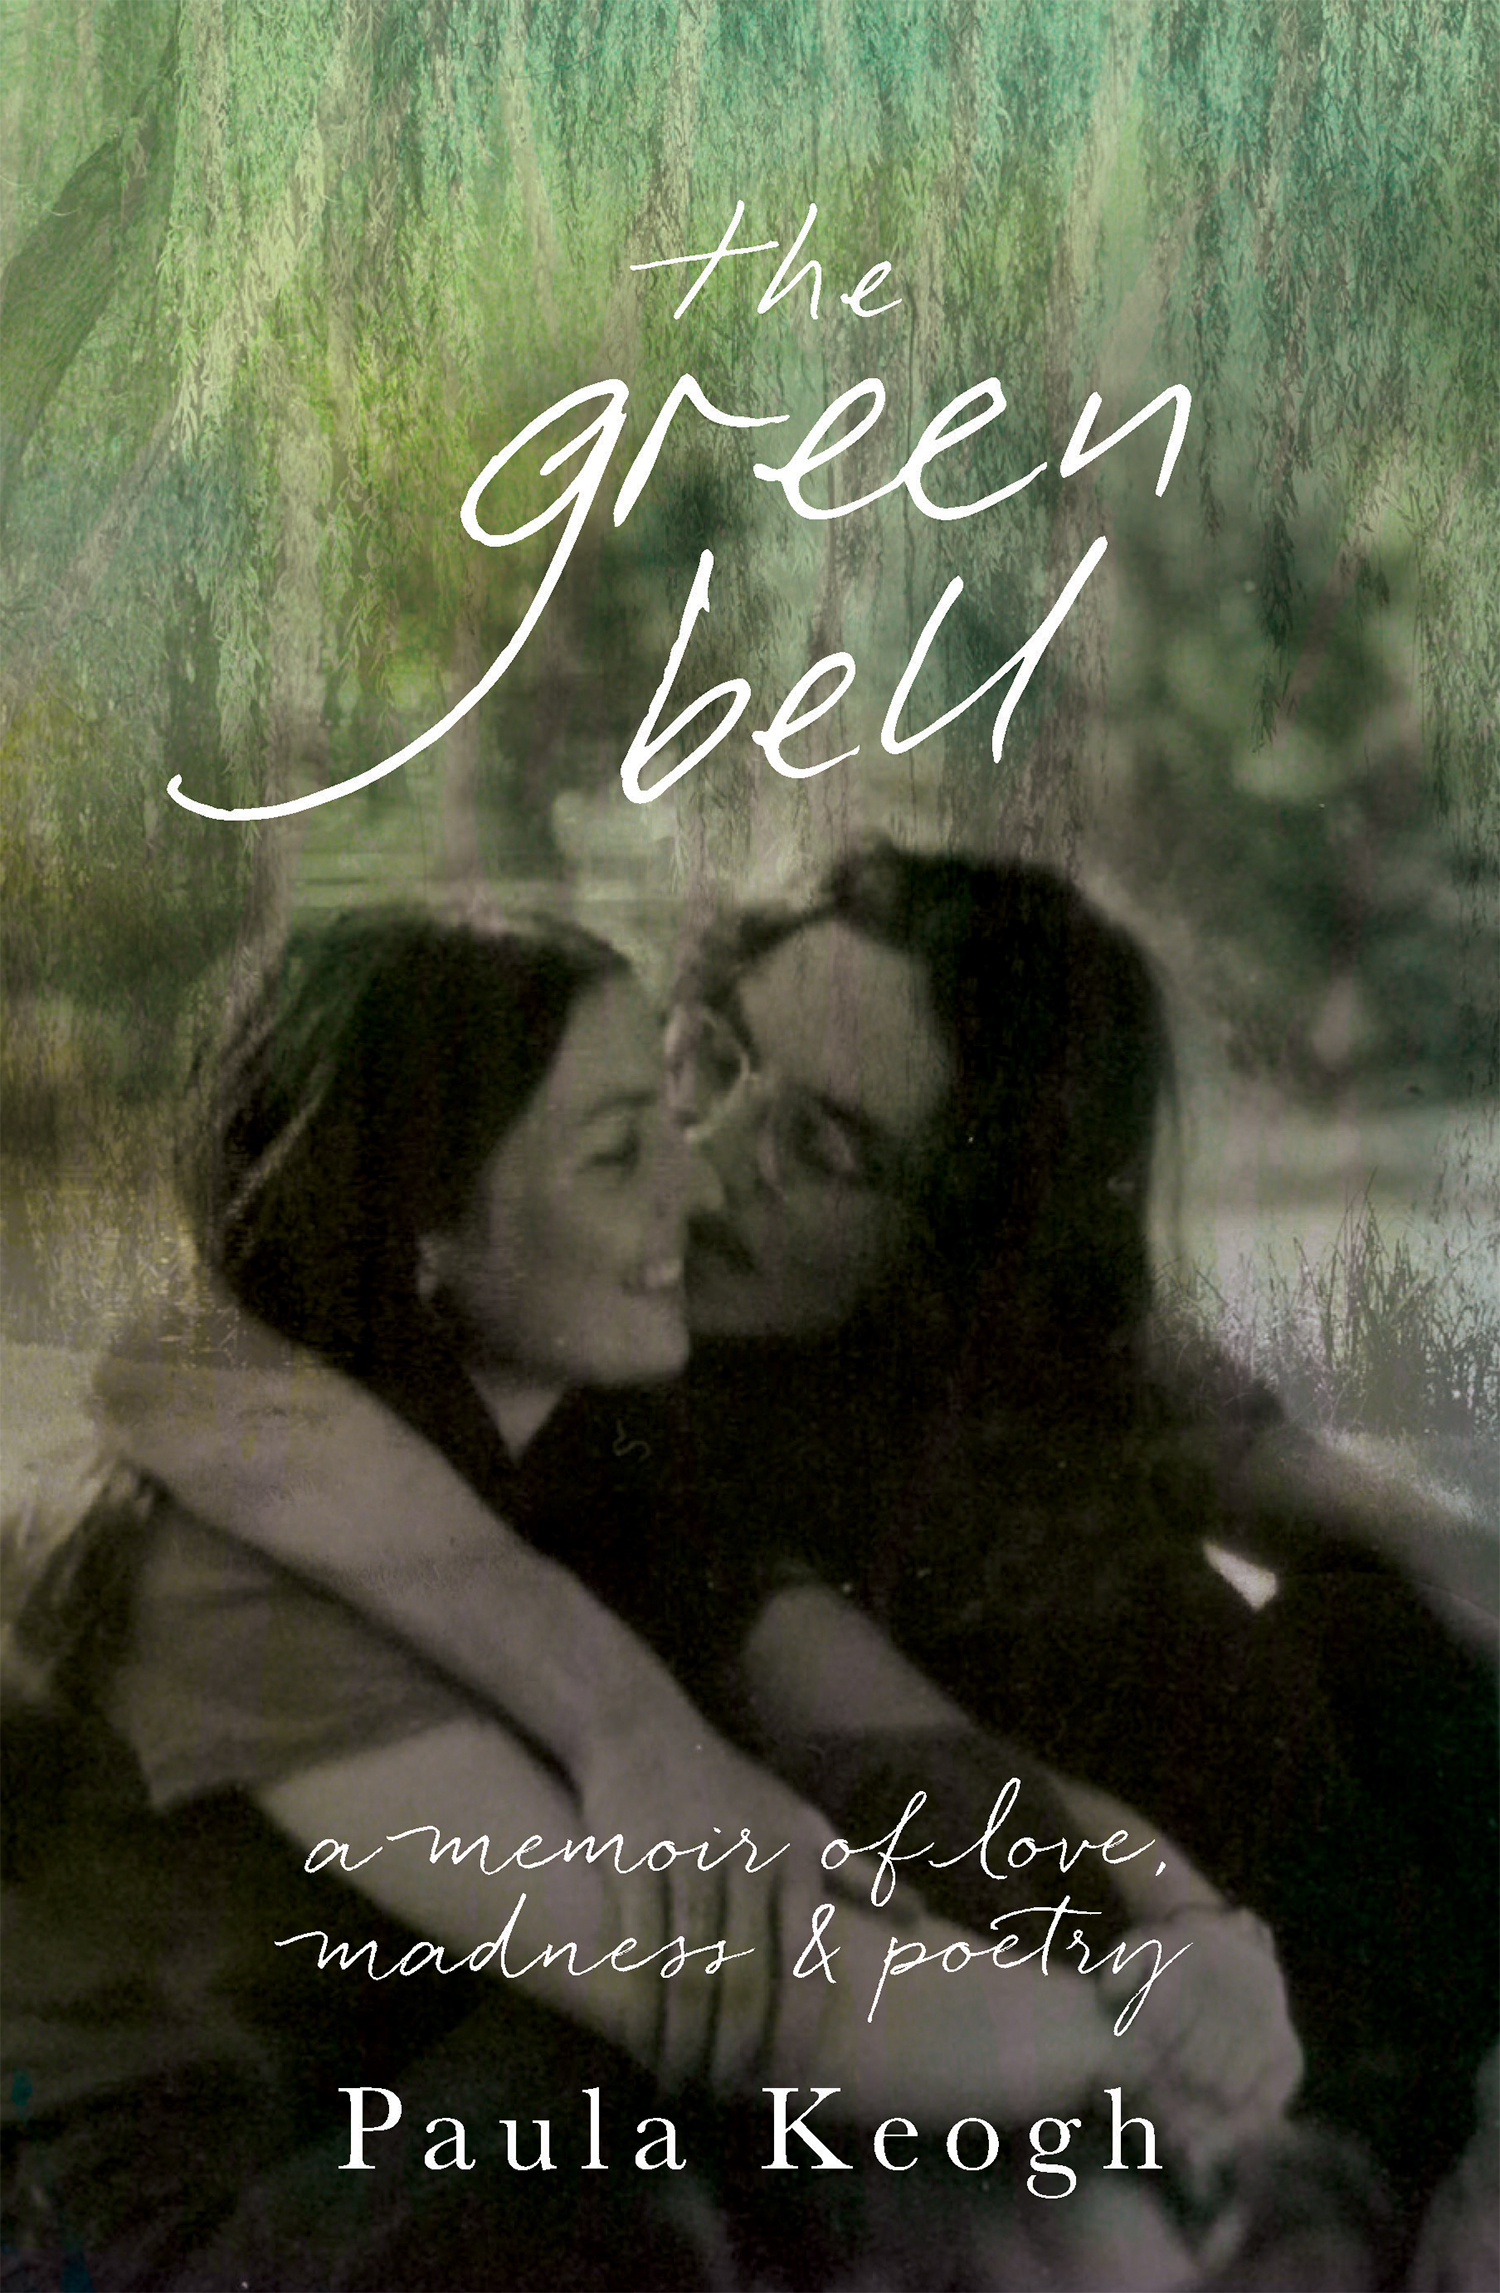 The Green Bell by Paula Keogh